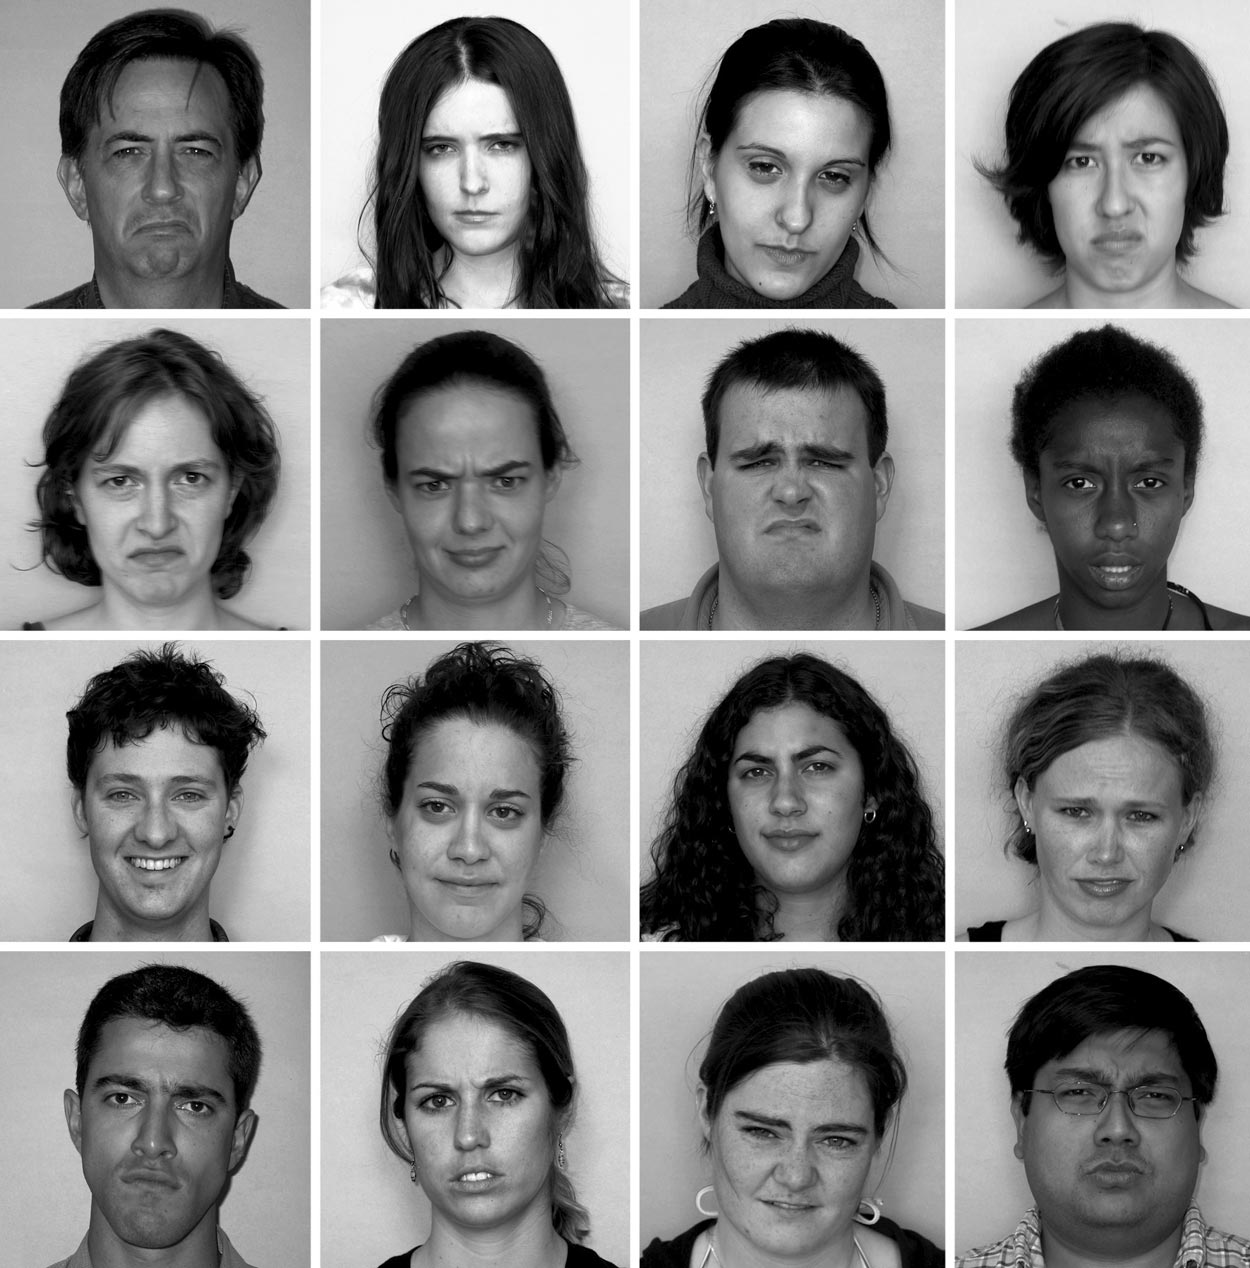 656 DANDENEAU ET AL. Figure 2. Picture grid with 15 rejecting and one accepting face. Participants in the experimental condition are instructed to identify the smiling person as quickly as possible.